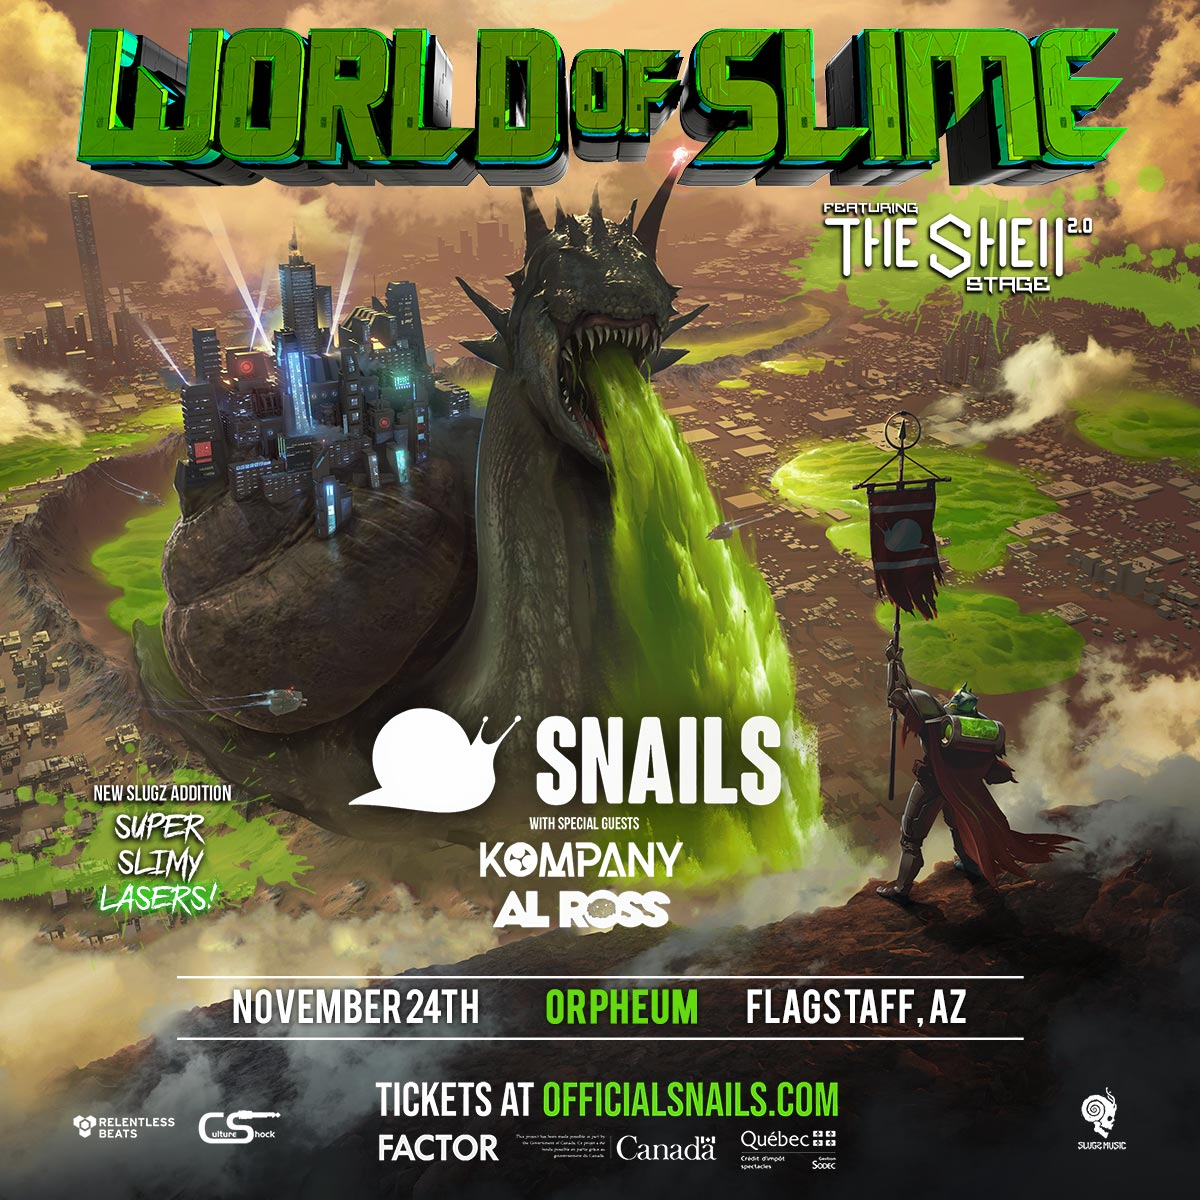 Flyer for Snails